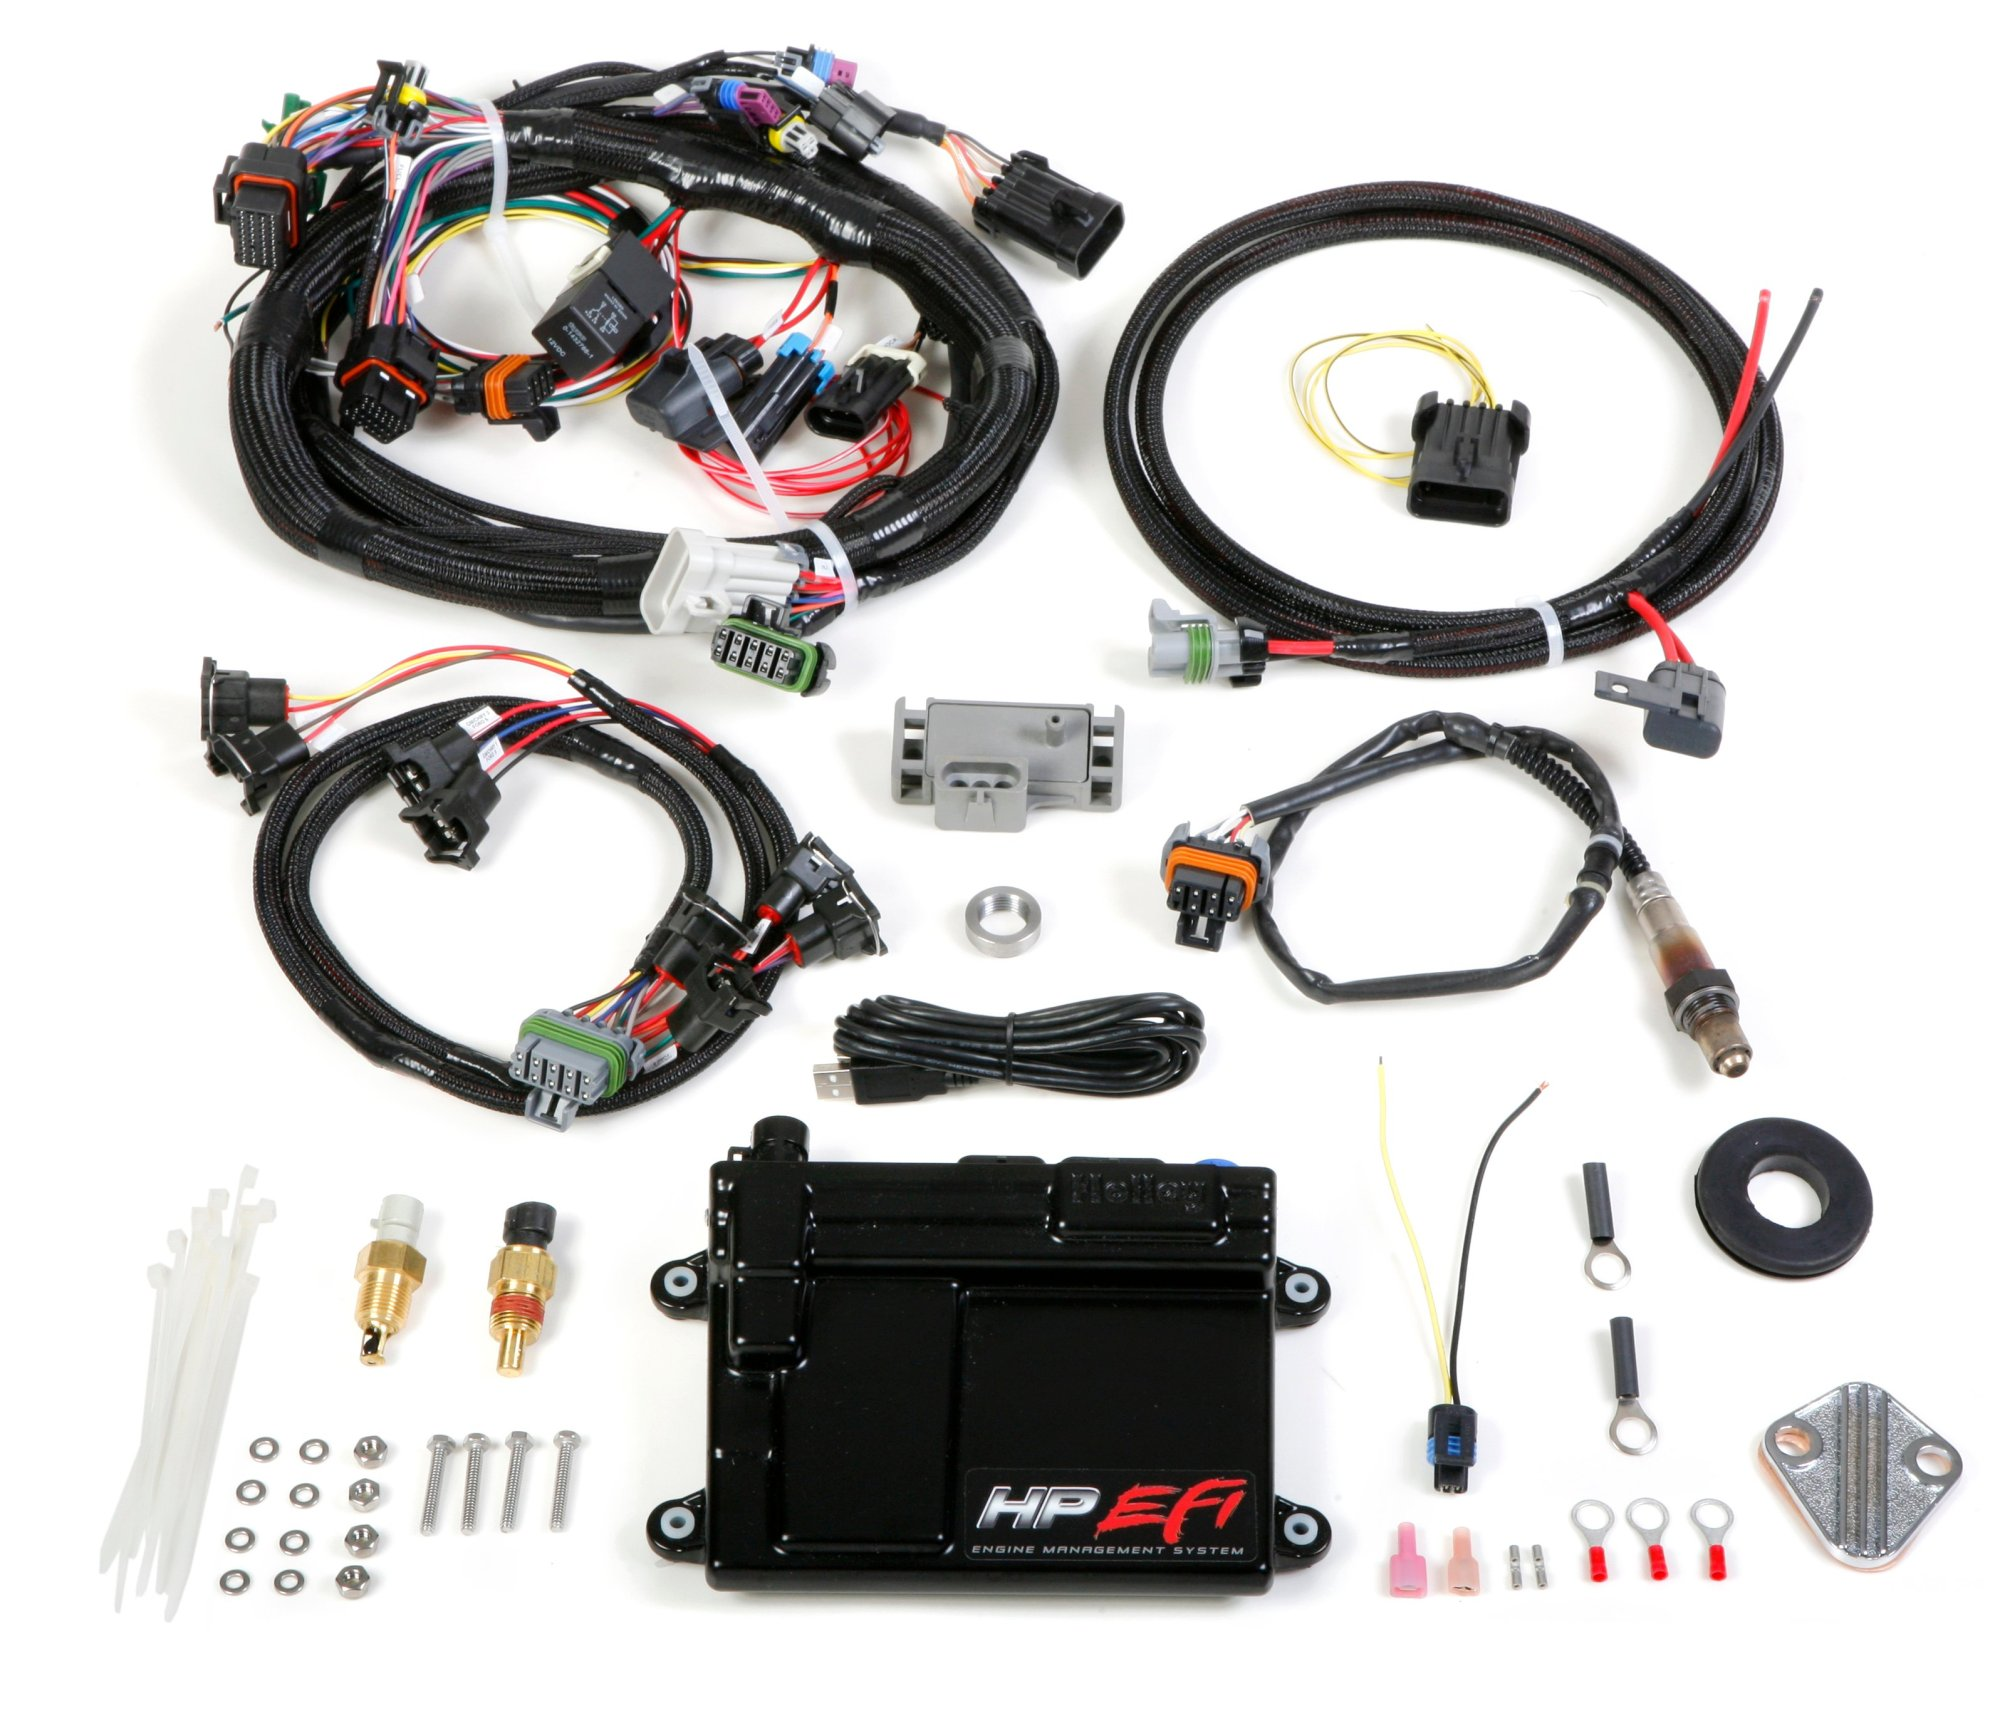 hight resolution of holley efi 550 604 hp efi ecu harness kits holley ls wiring harness diagram holley wiring harness